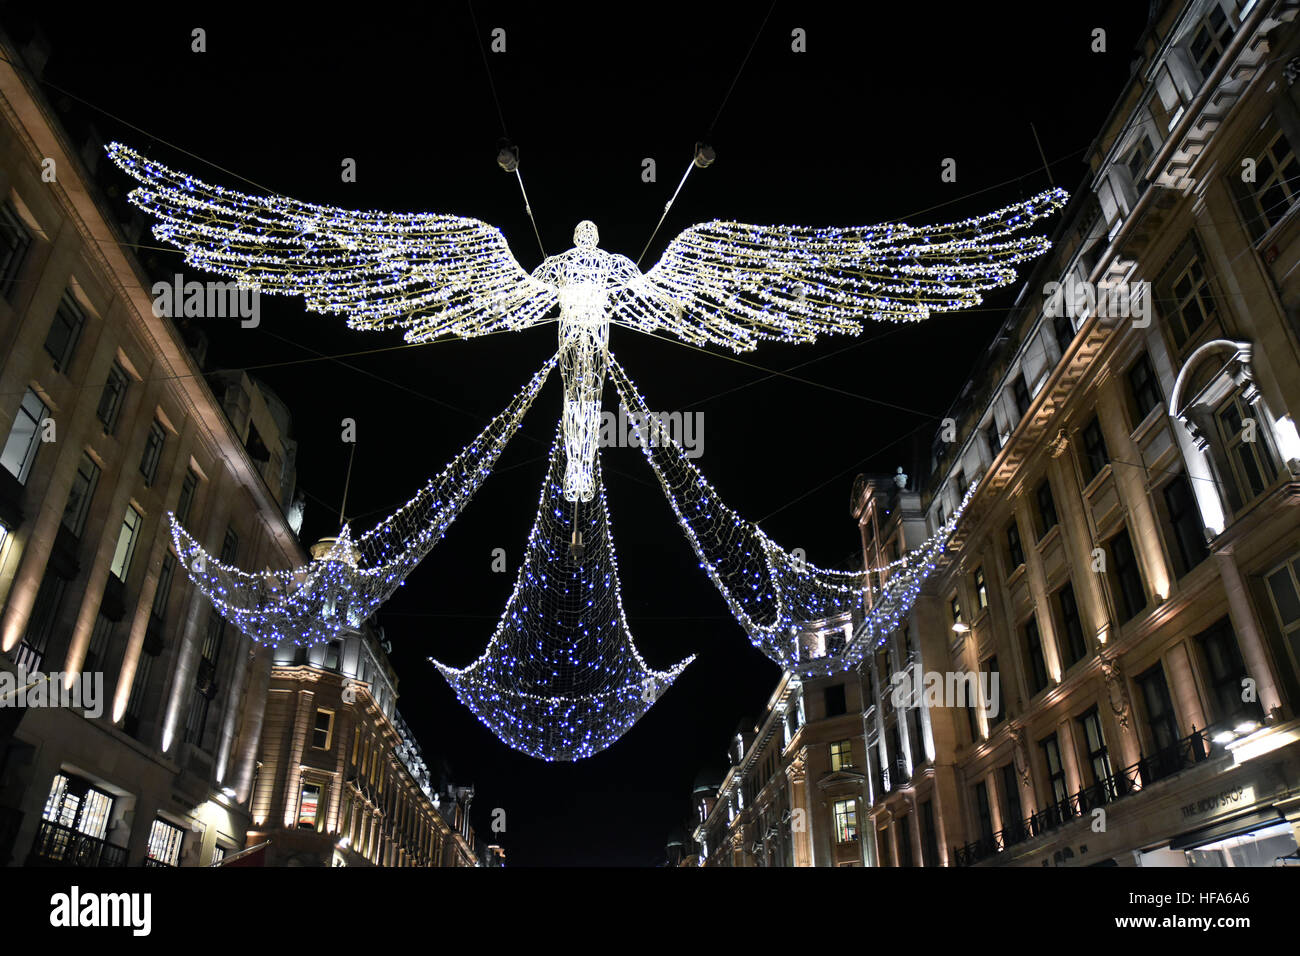 Regent Street Christmas lights - Stock Image